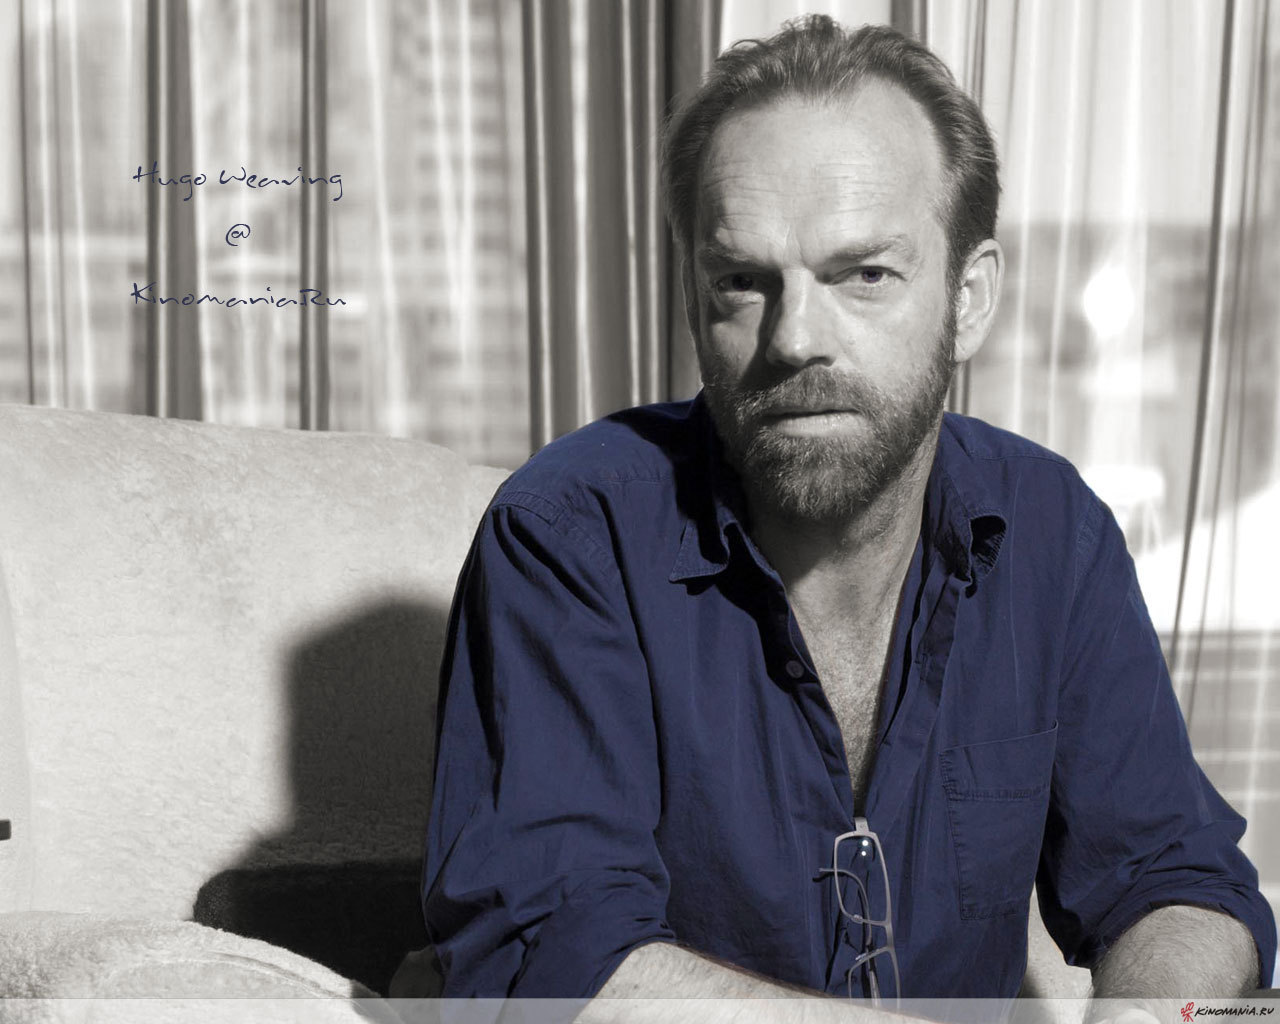 hugo weaving megatron voicehugo weaving v for vendetta, hugo weaving height, hugo weaving lord of the rings, hugo weaving interview, hugo weaving wife, hugo weaving v, hugo weaving instagram, hugo weaving family, hugo weaving megatron voice, hugo weaving voice, hugo weaving 2017, hugo weaving height weight, hugo weaving macbeth, hugo weaving movies, hugo weaving autograph, hugo weaving son, hugo weaving imdb, hugo weaving kimdir, hugo weaving hobbit, hugo weaving teeth